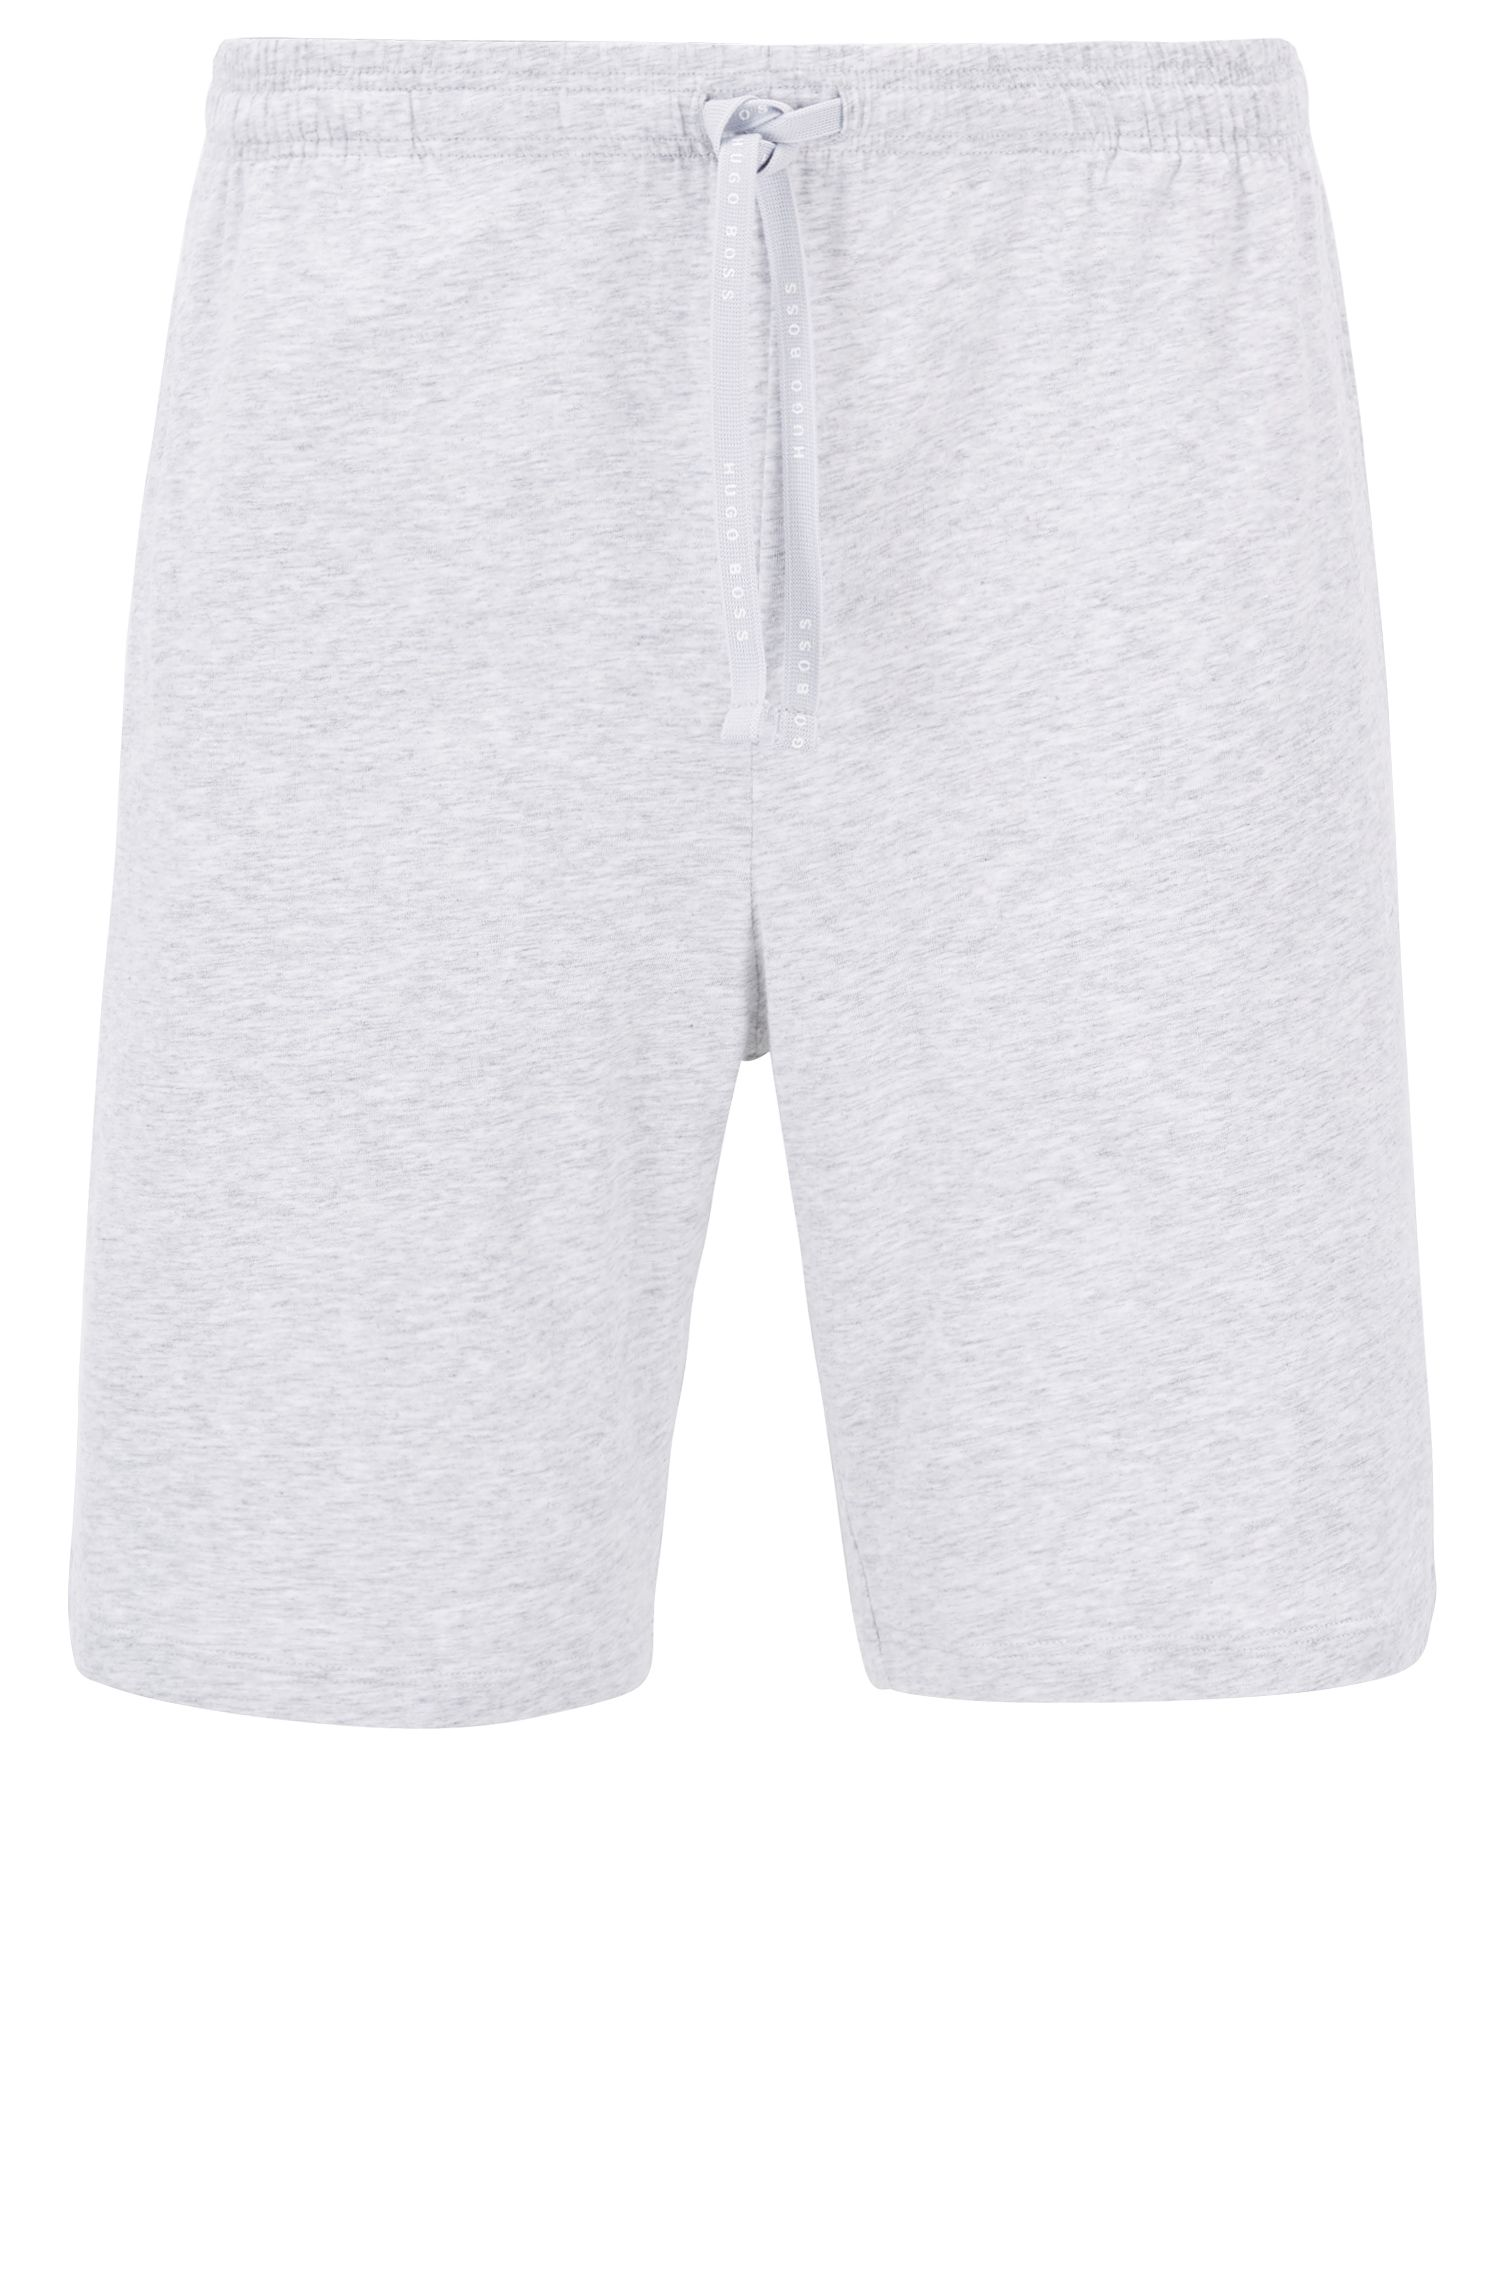 Loungewear shorts in stretch cotton jersey with drawstring waist